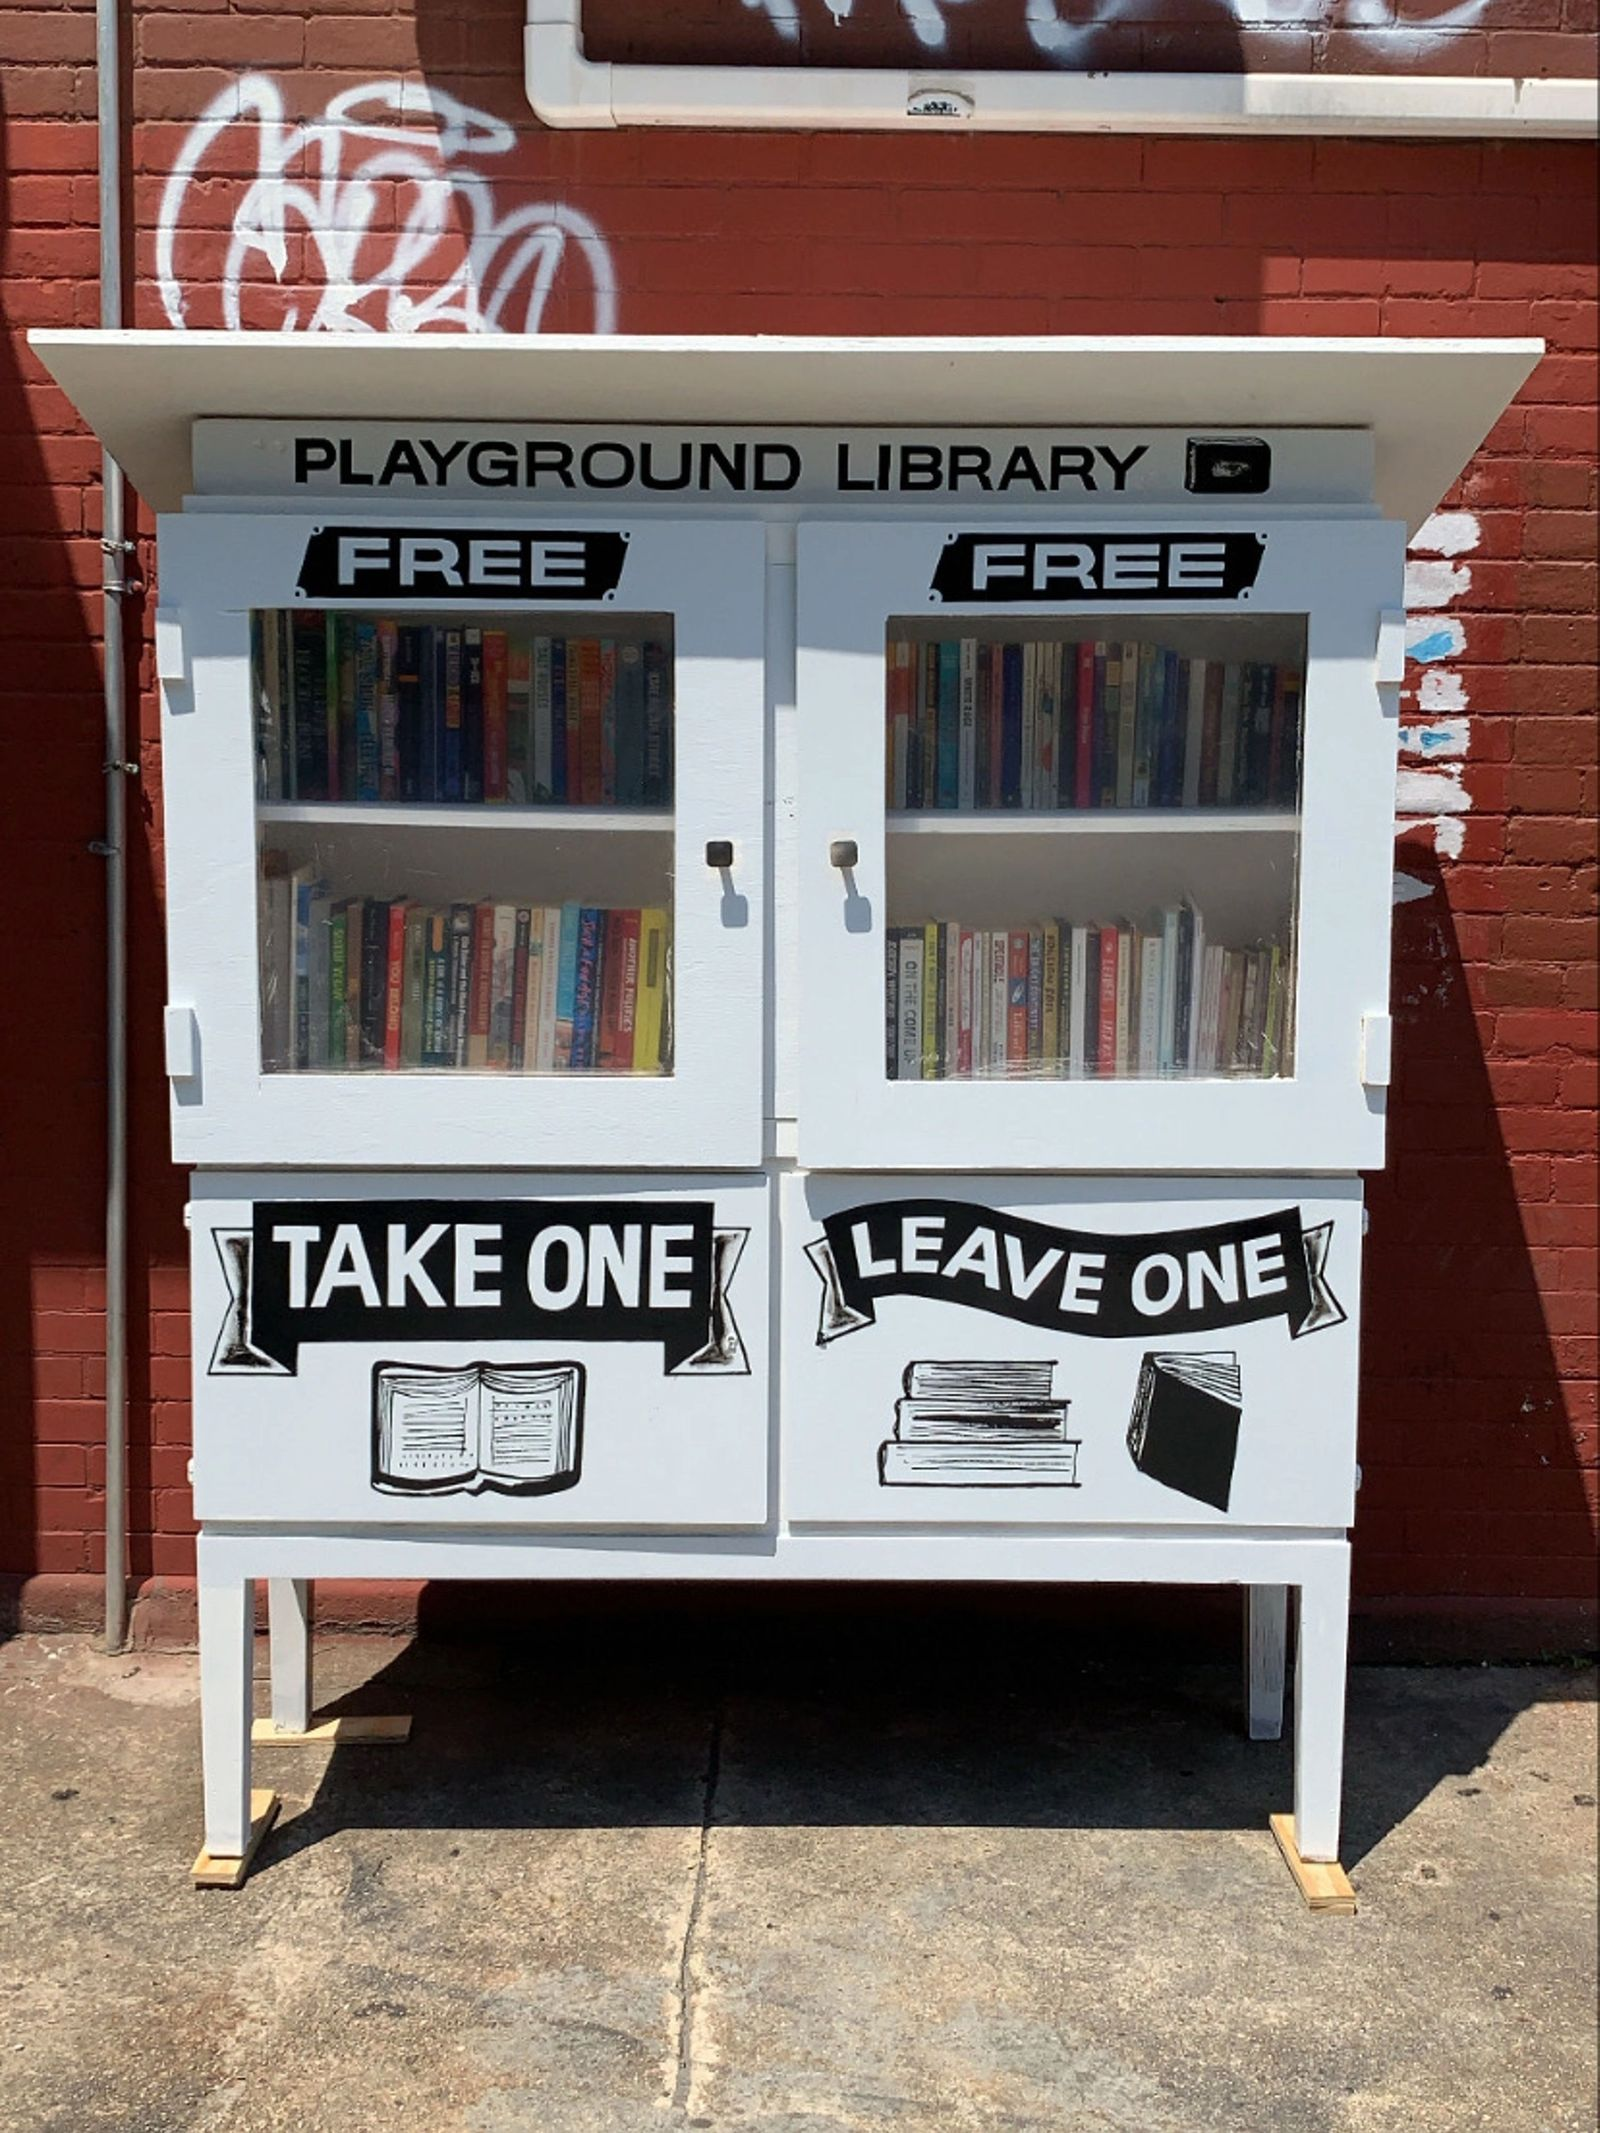 Take One Leave Library outside of Playground Coffee Shop.